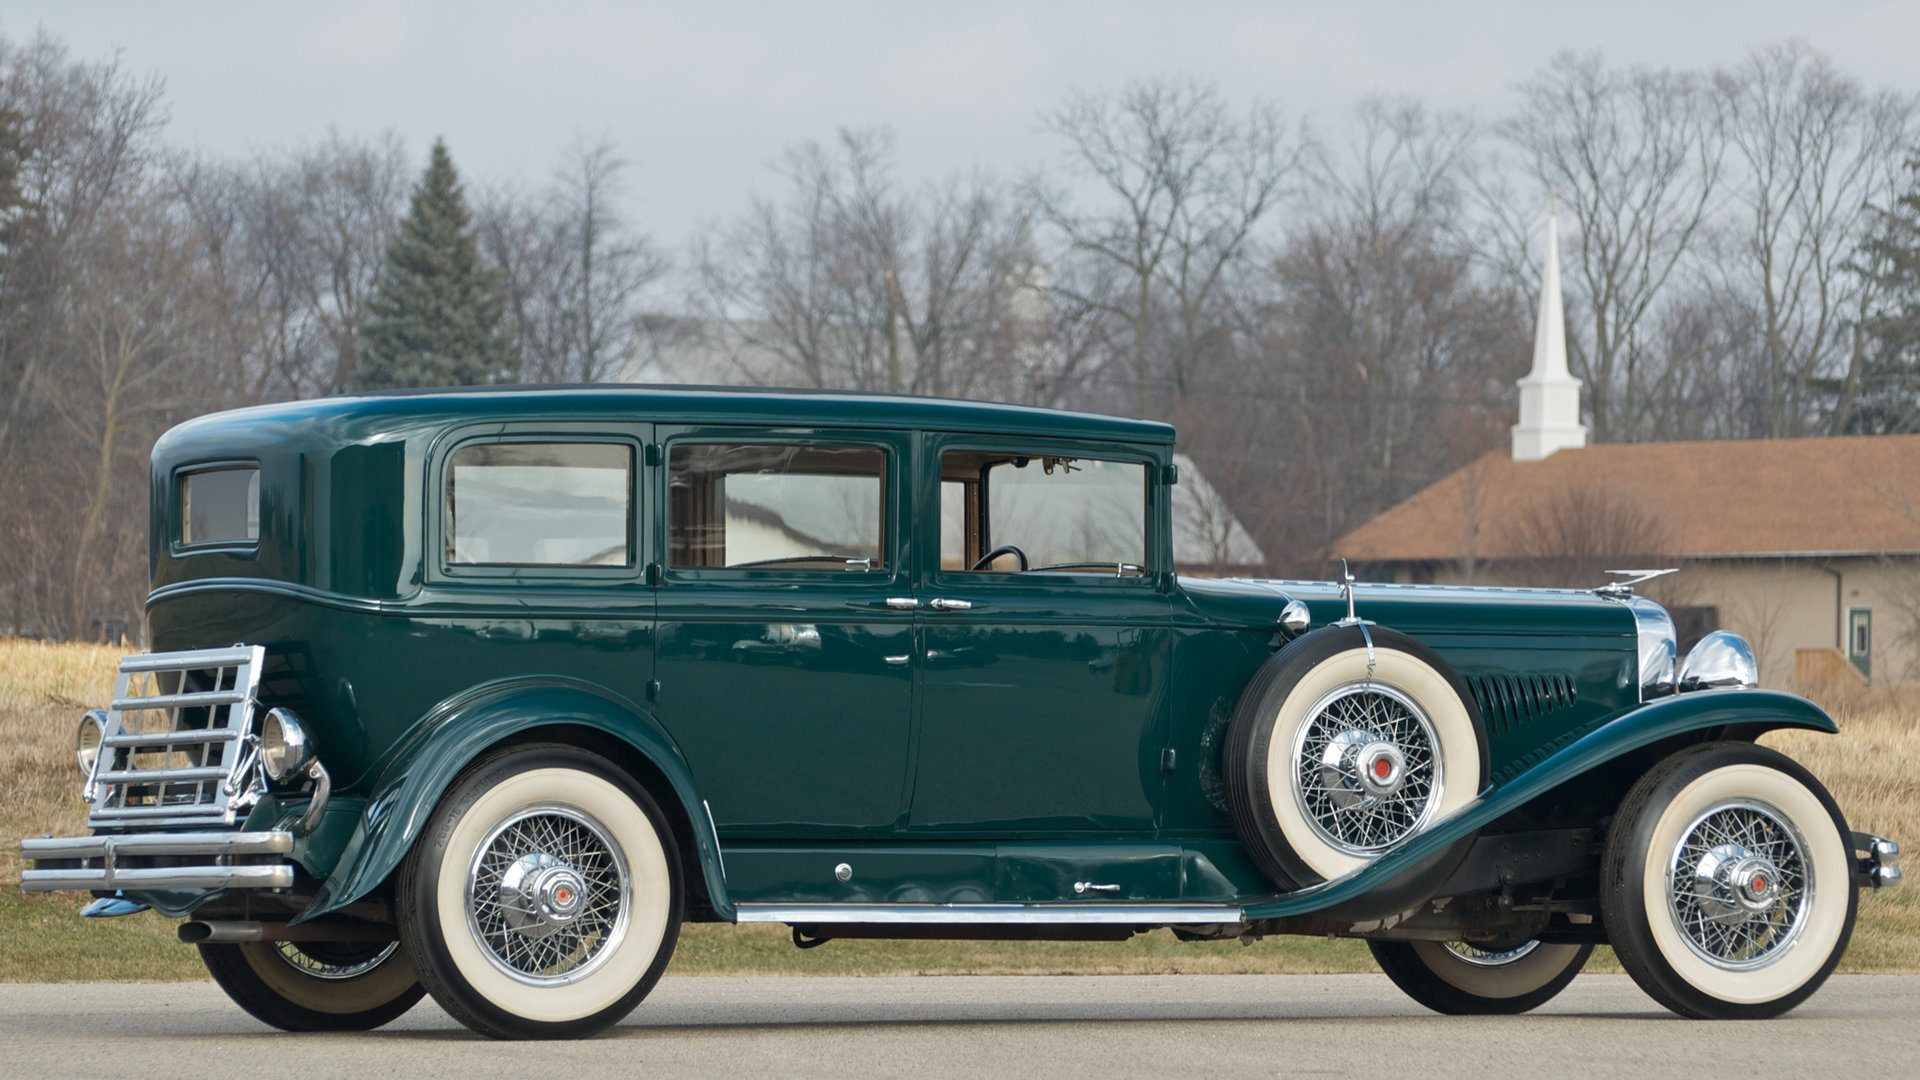 1930 Duesenberg J 383/2402 Limousine LWB by Willoughby